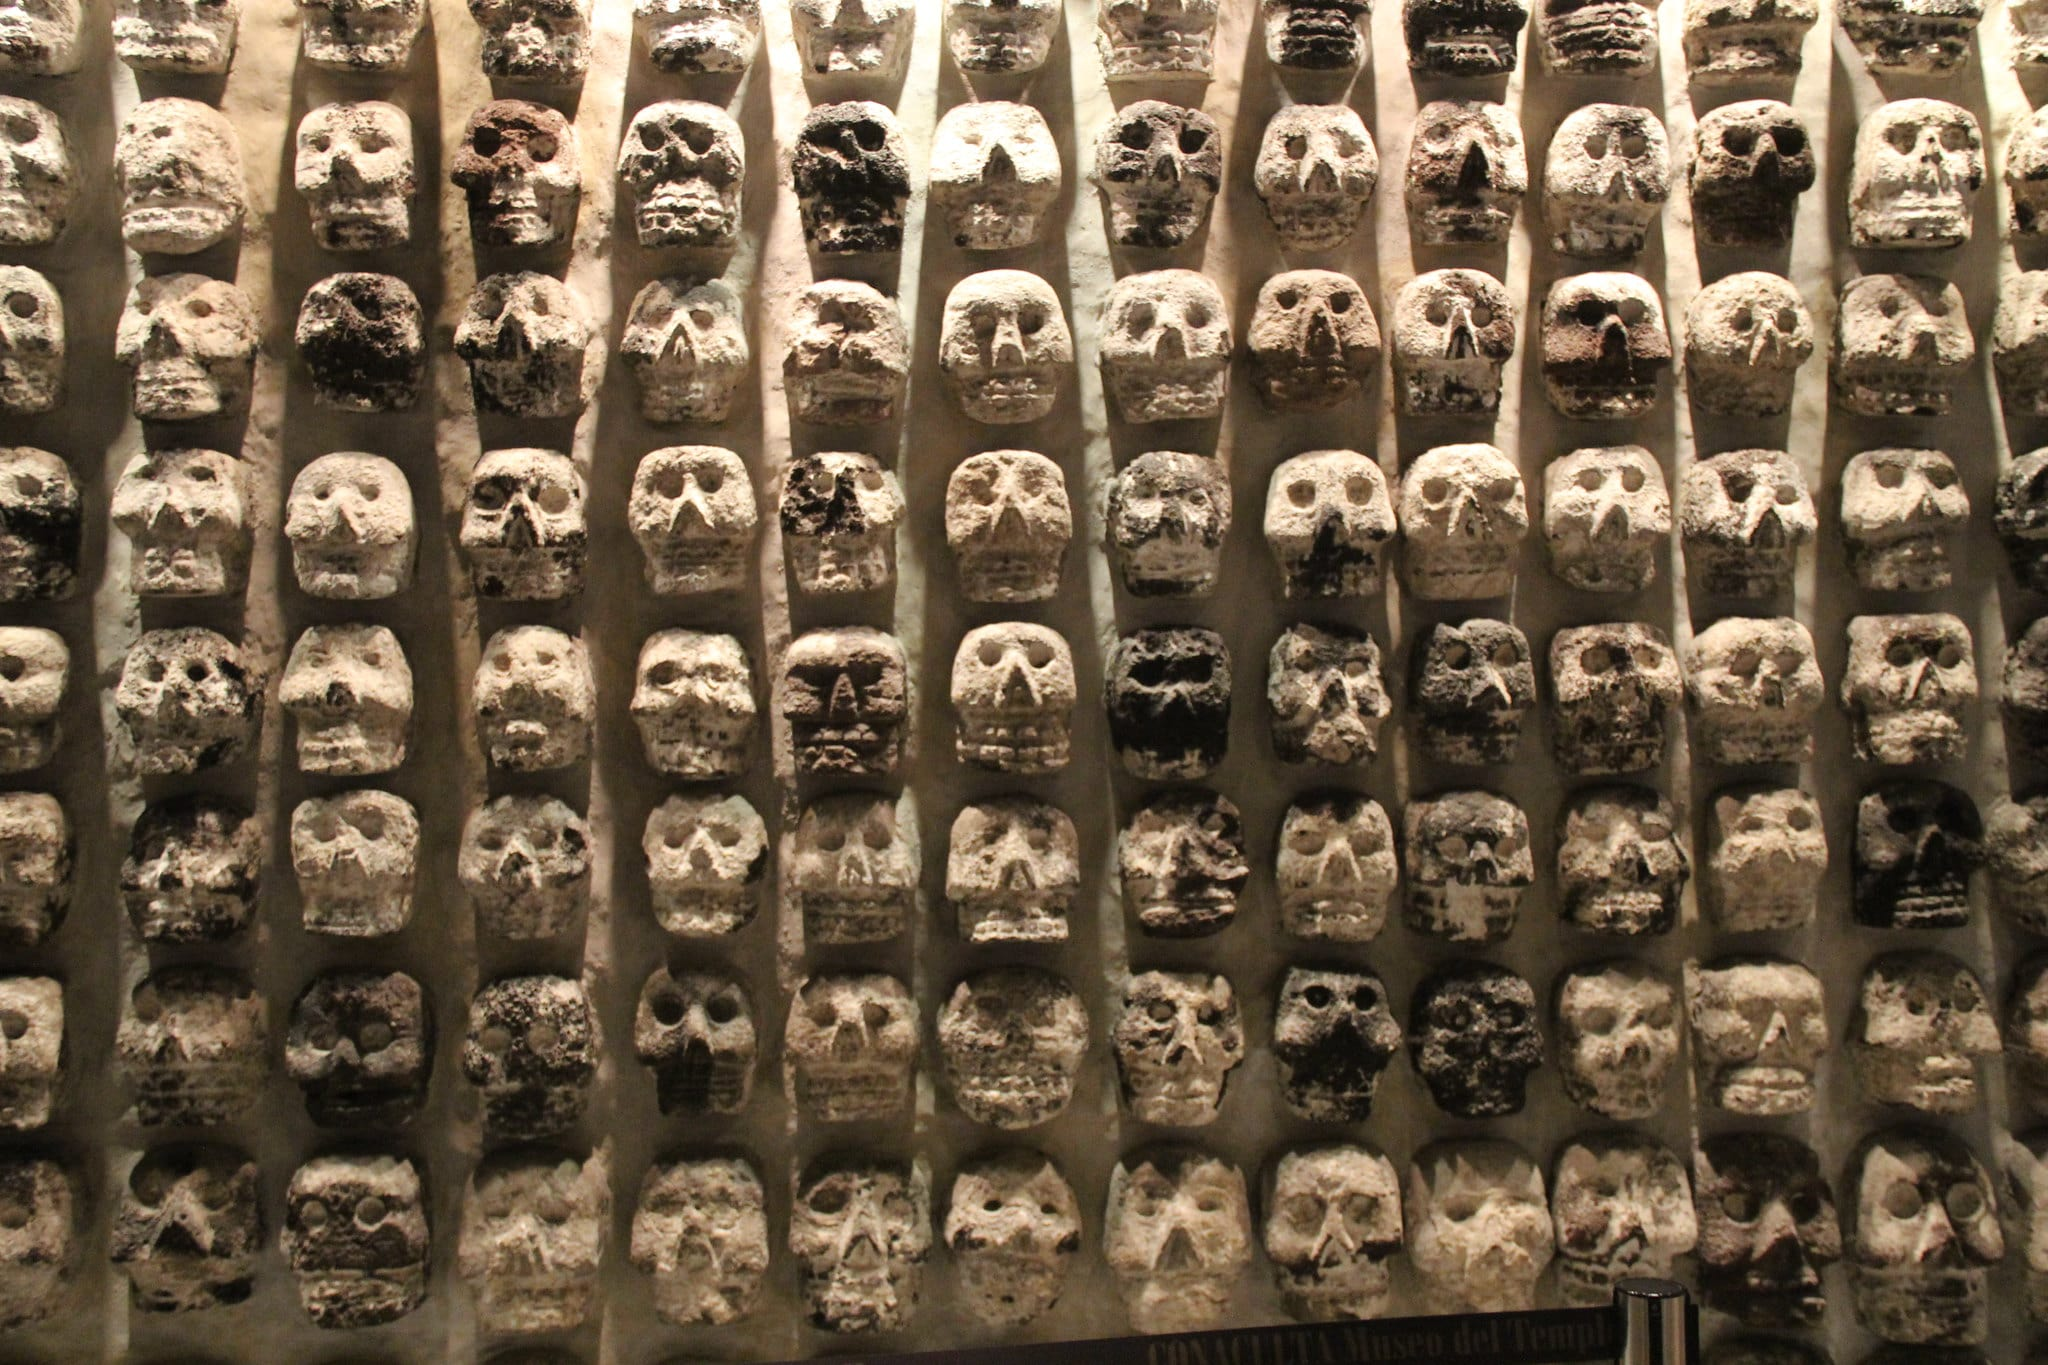 Templo Mayor Museum is a must visit in the historic center of Mexico City